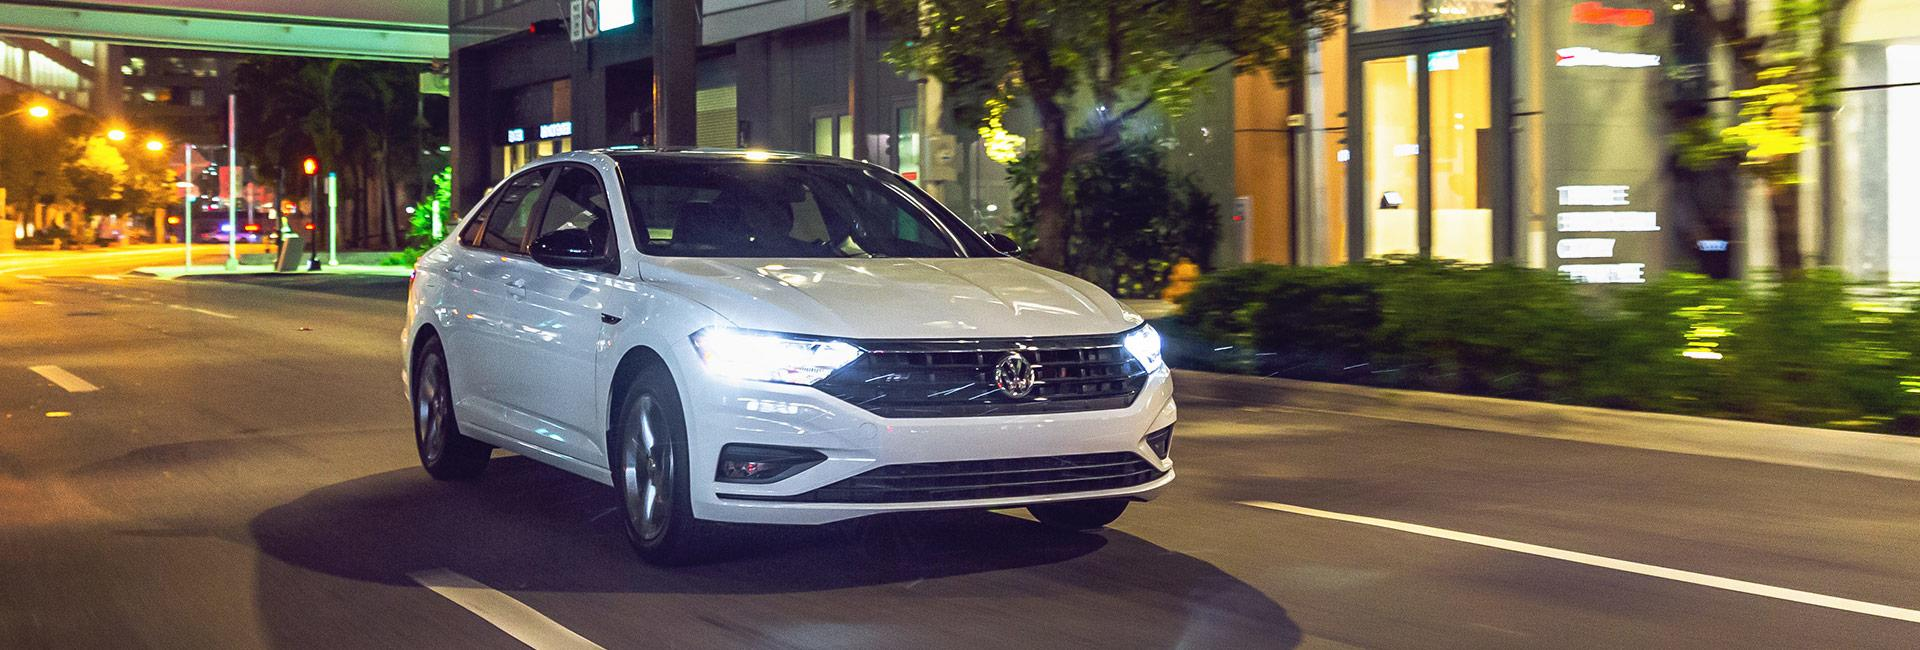 2020 Jetta in motion at night